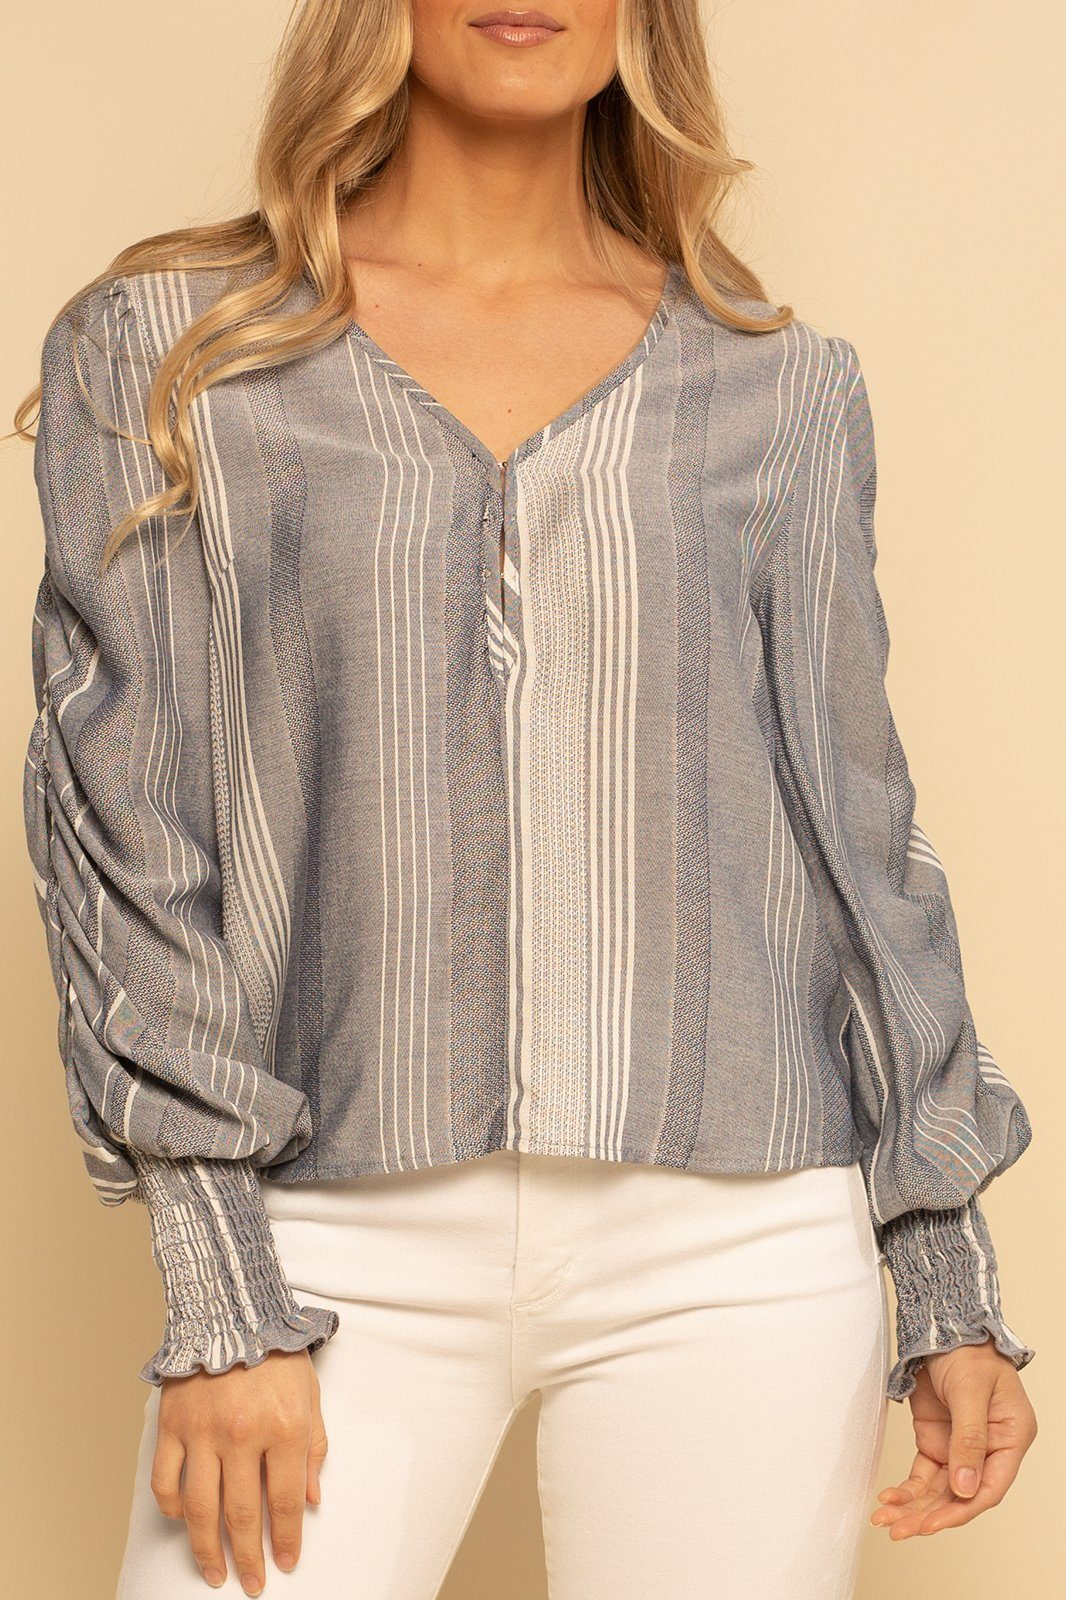 Smocked Wrist Top - Denim Stripe - Shore